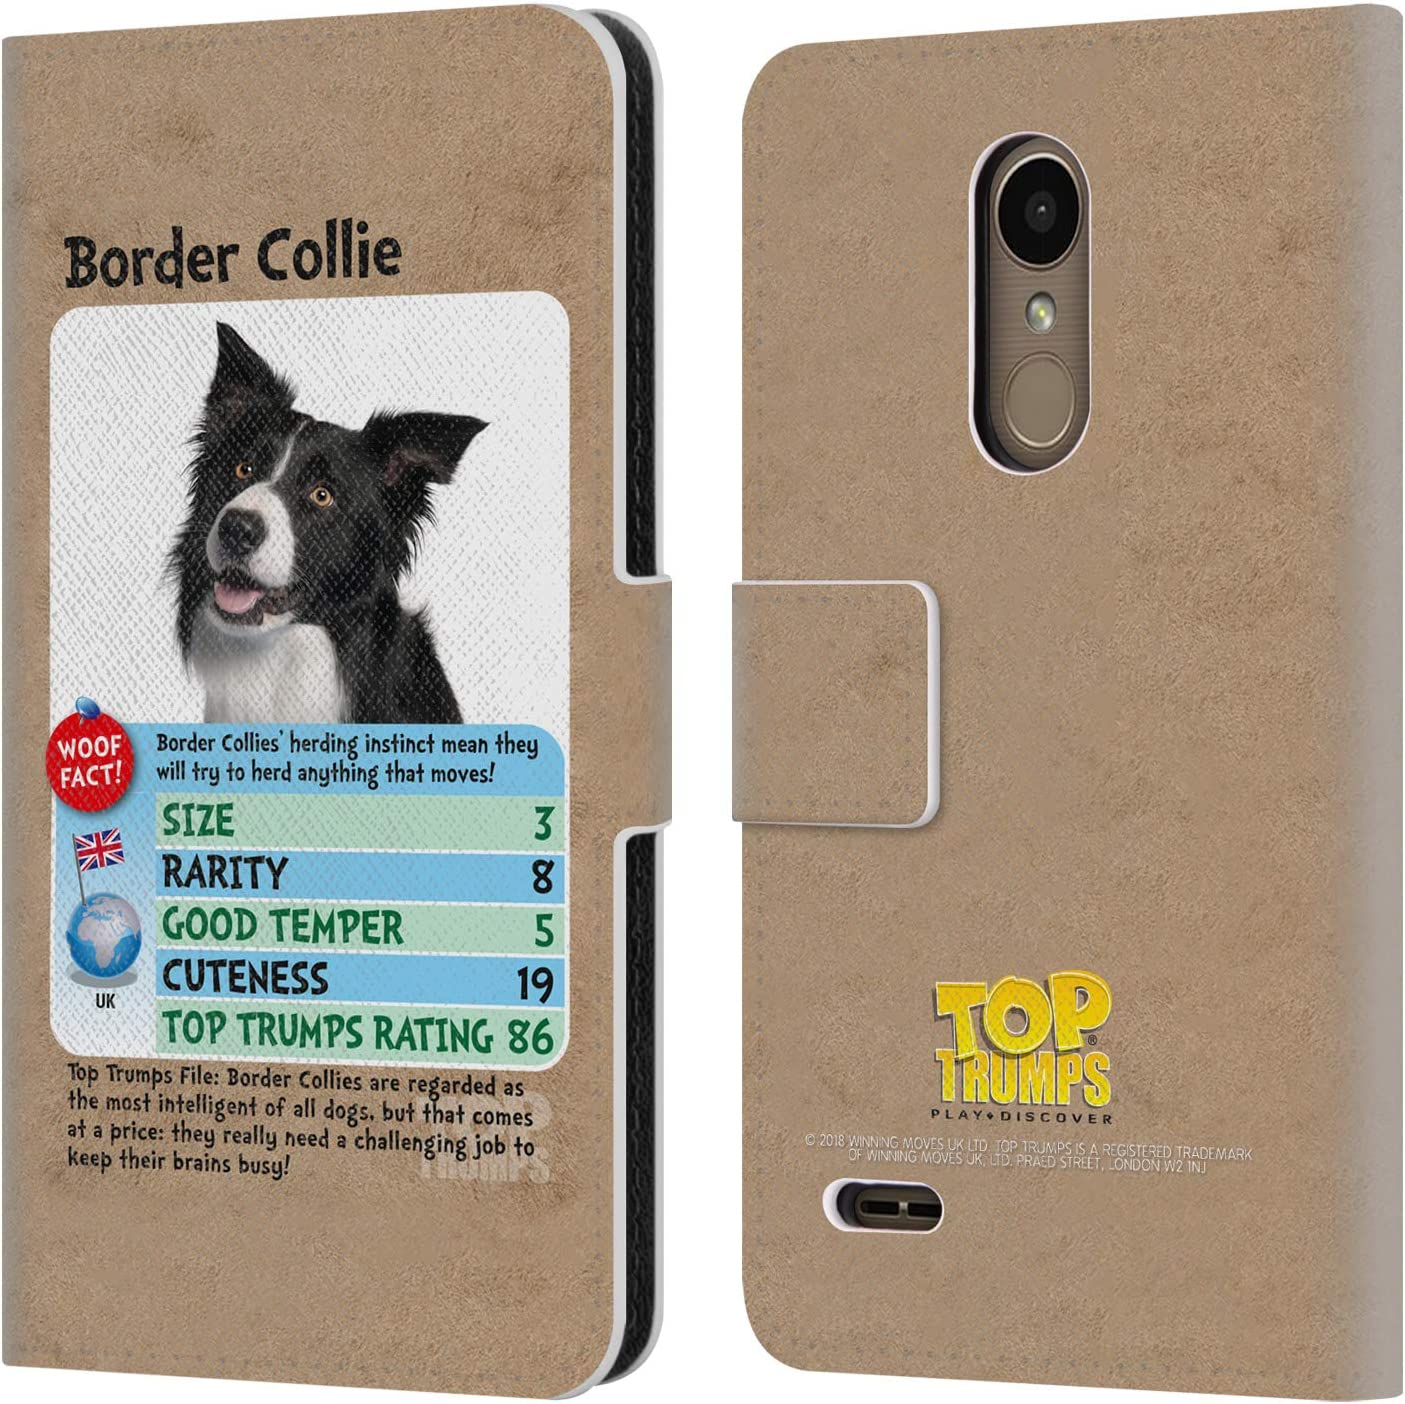 Official Top Trumps Border Collie Dogs 2 Leather Book Wallet Case Cover Compatible for LG K10 / K11 / K11 Plus (2018)